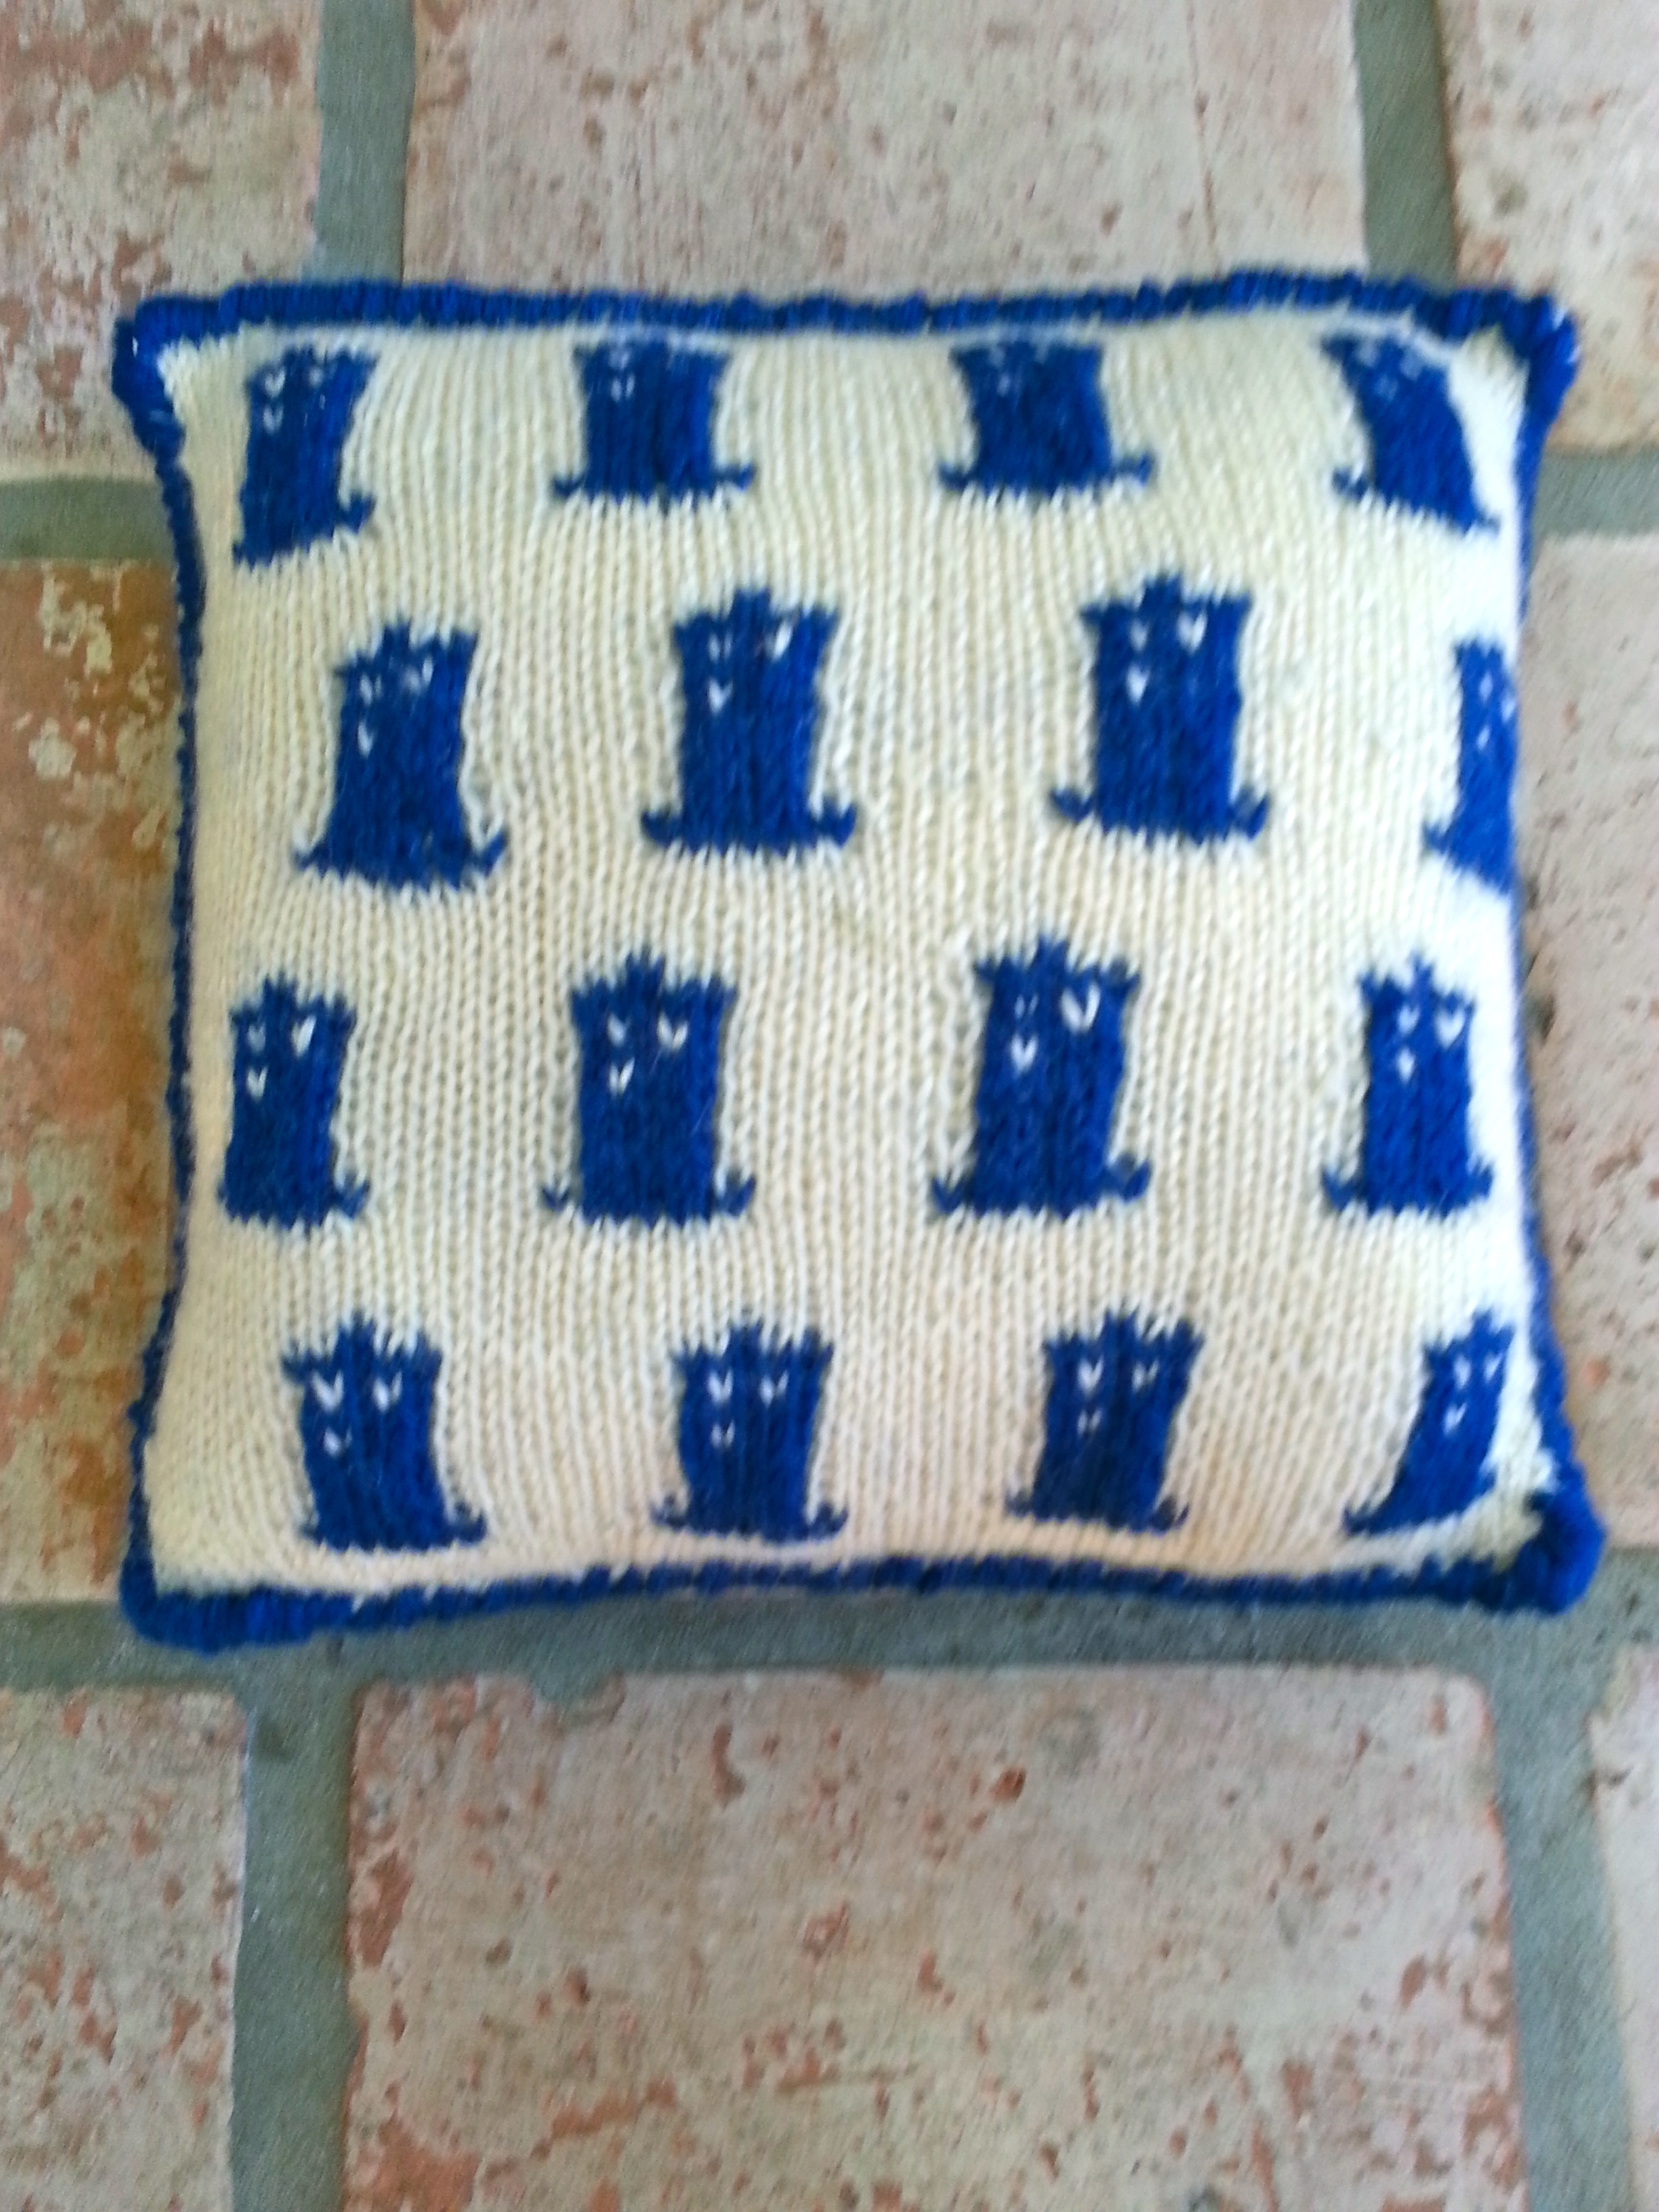 Knitting Pattern For Tardis Socks : Three blue knits?including a TARDIS pillow! knitbyahenshop